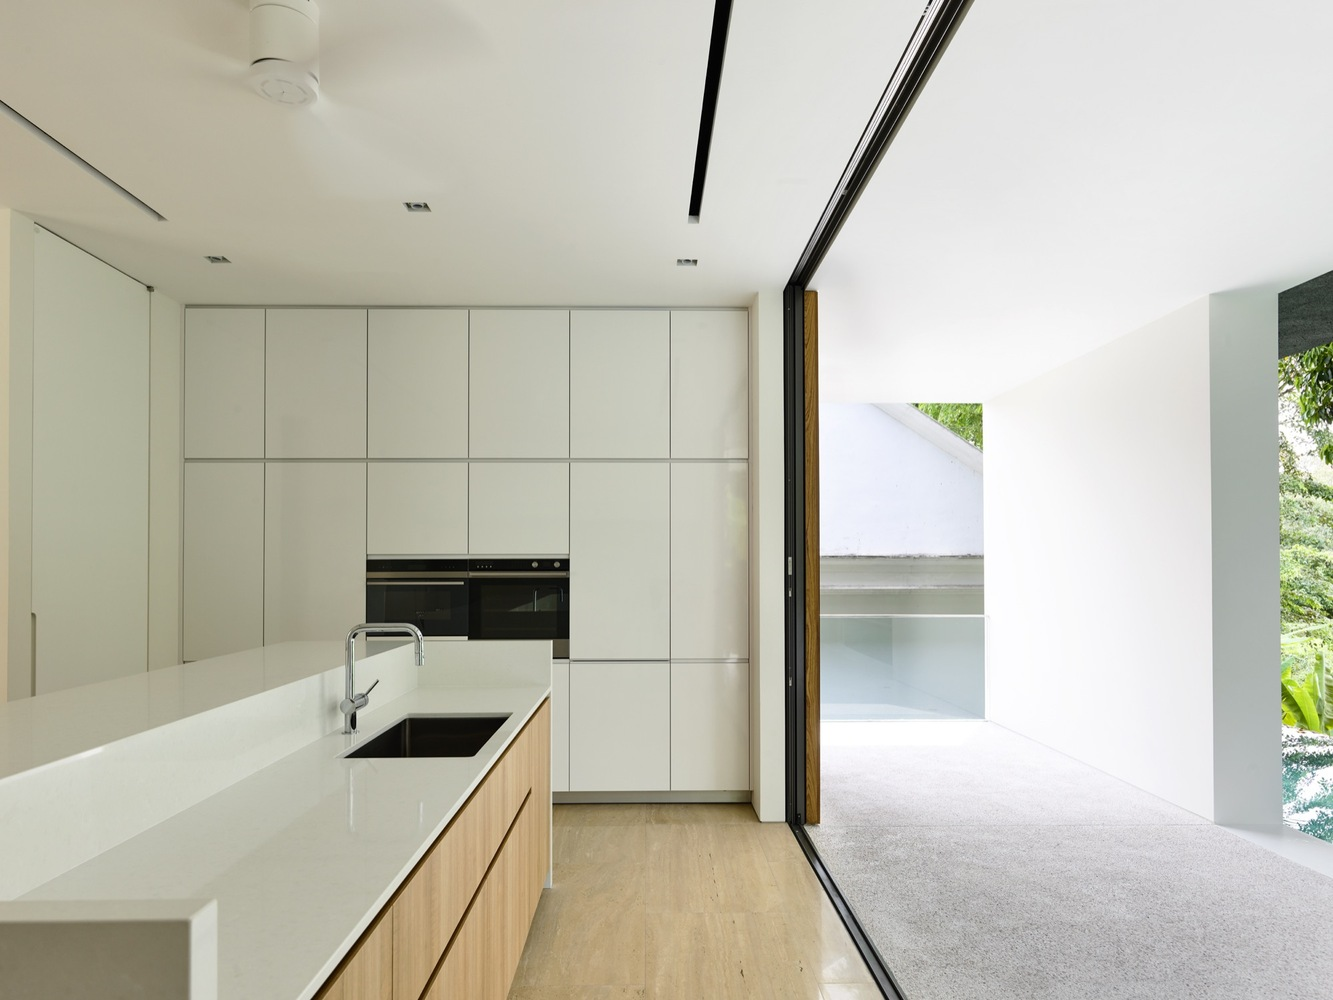 Sliding doors ensure a seamless connection between the kitchen and the outdoor spaces